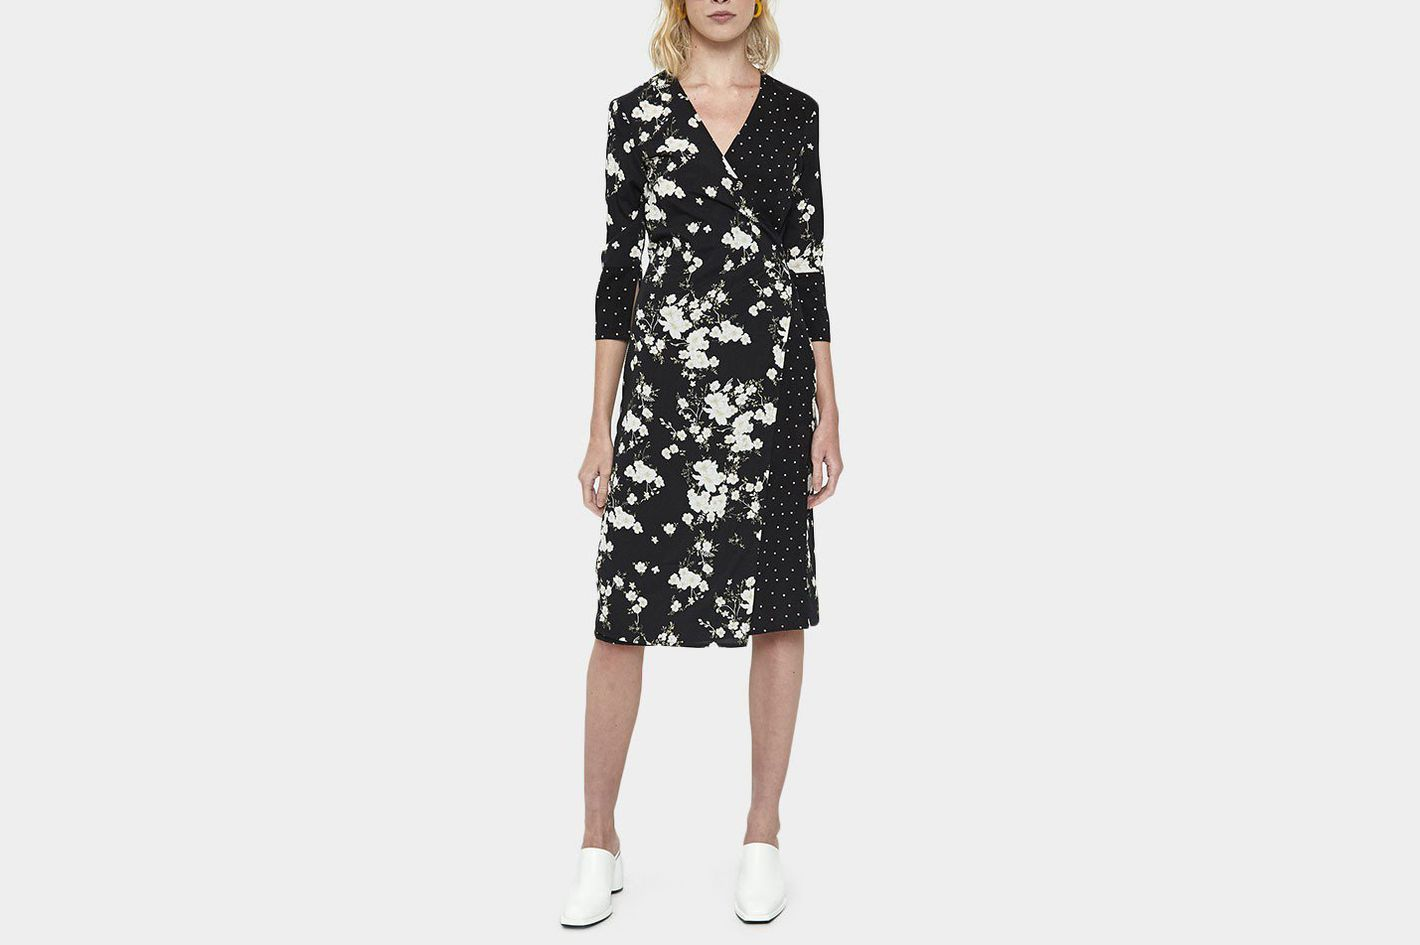 7758e1c02a0f1 25 Wrap Dresses You Can Wear to Work